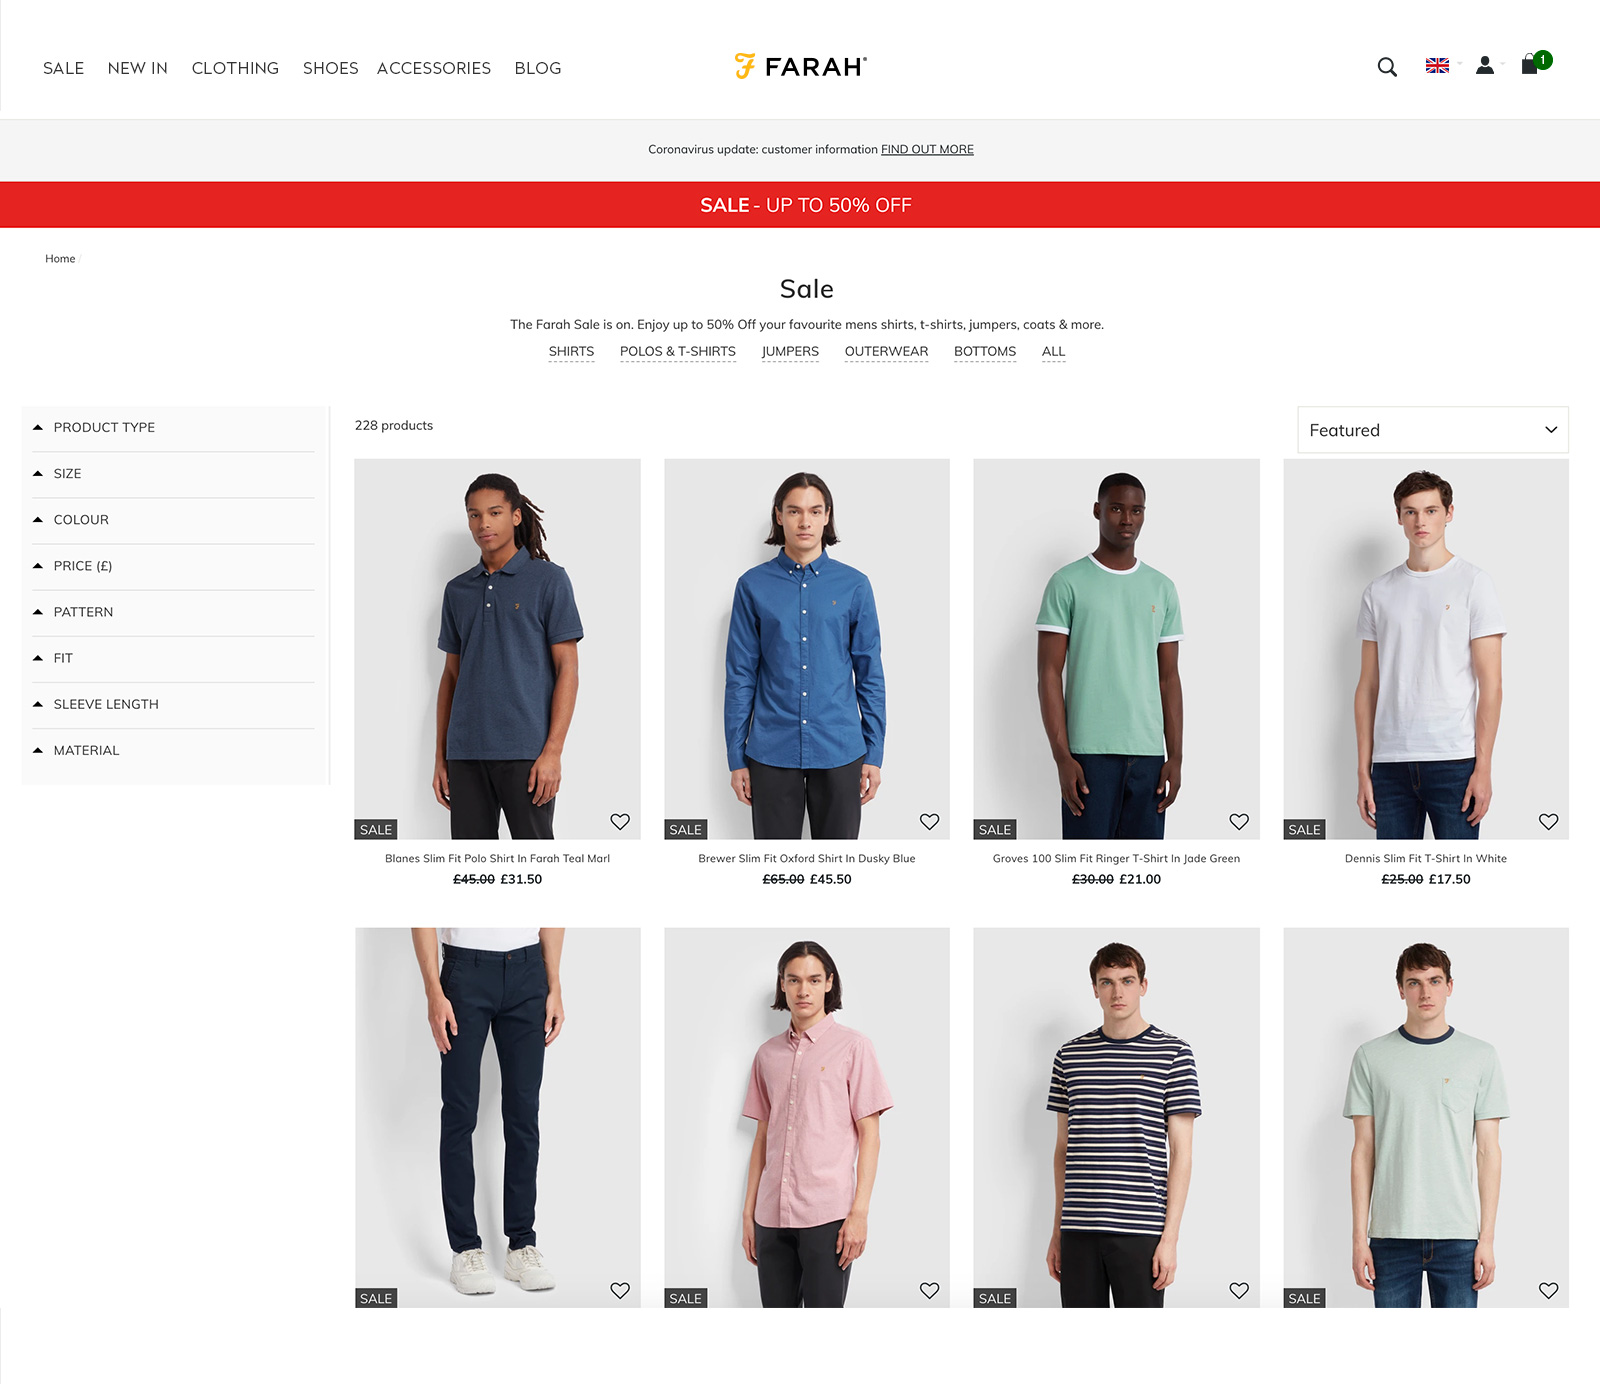 Product listing page